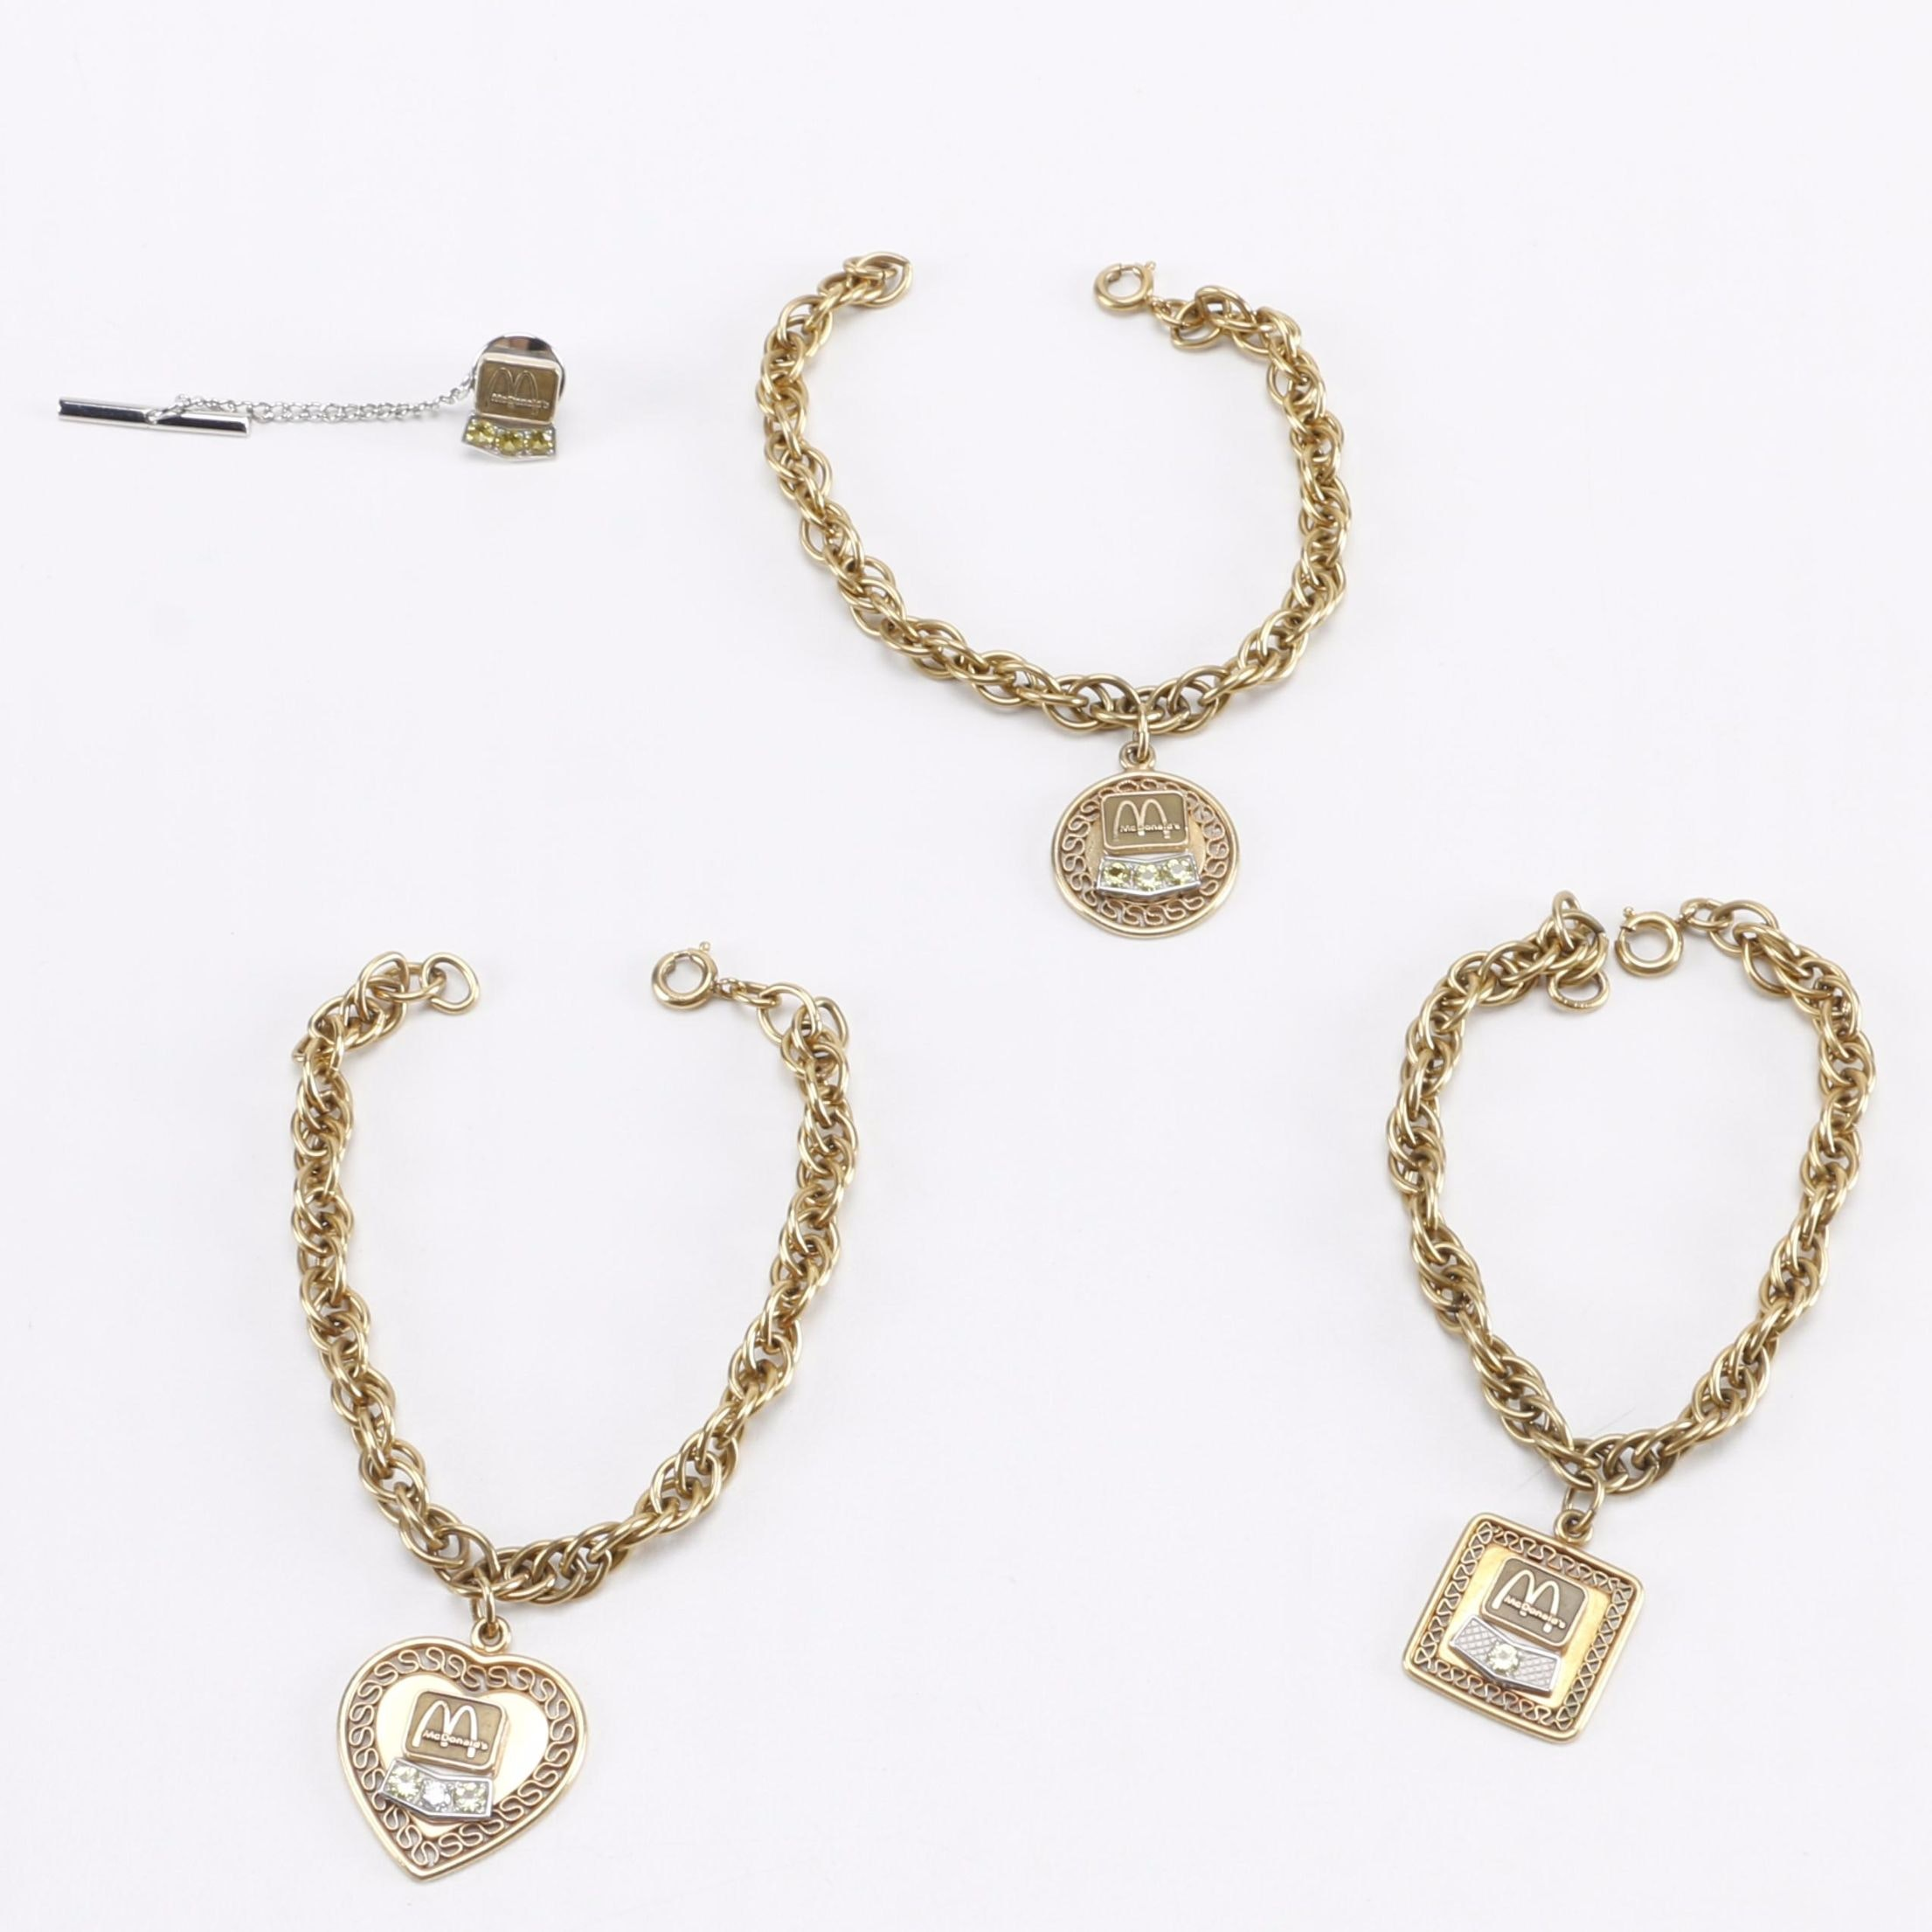 Gold Filled McDonald's Jewelry Including a Diamond Charm